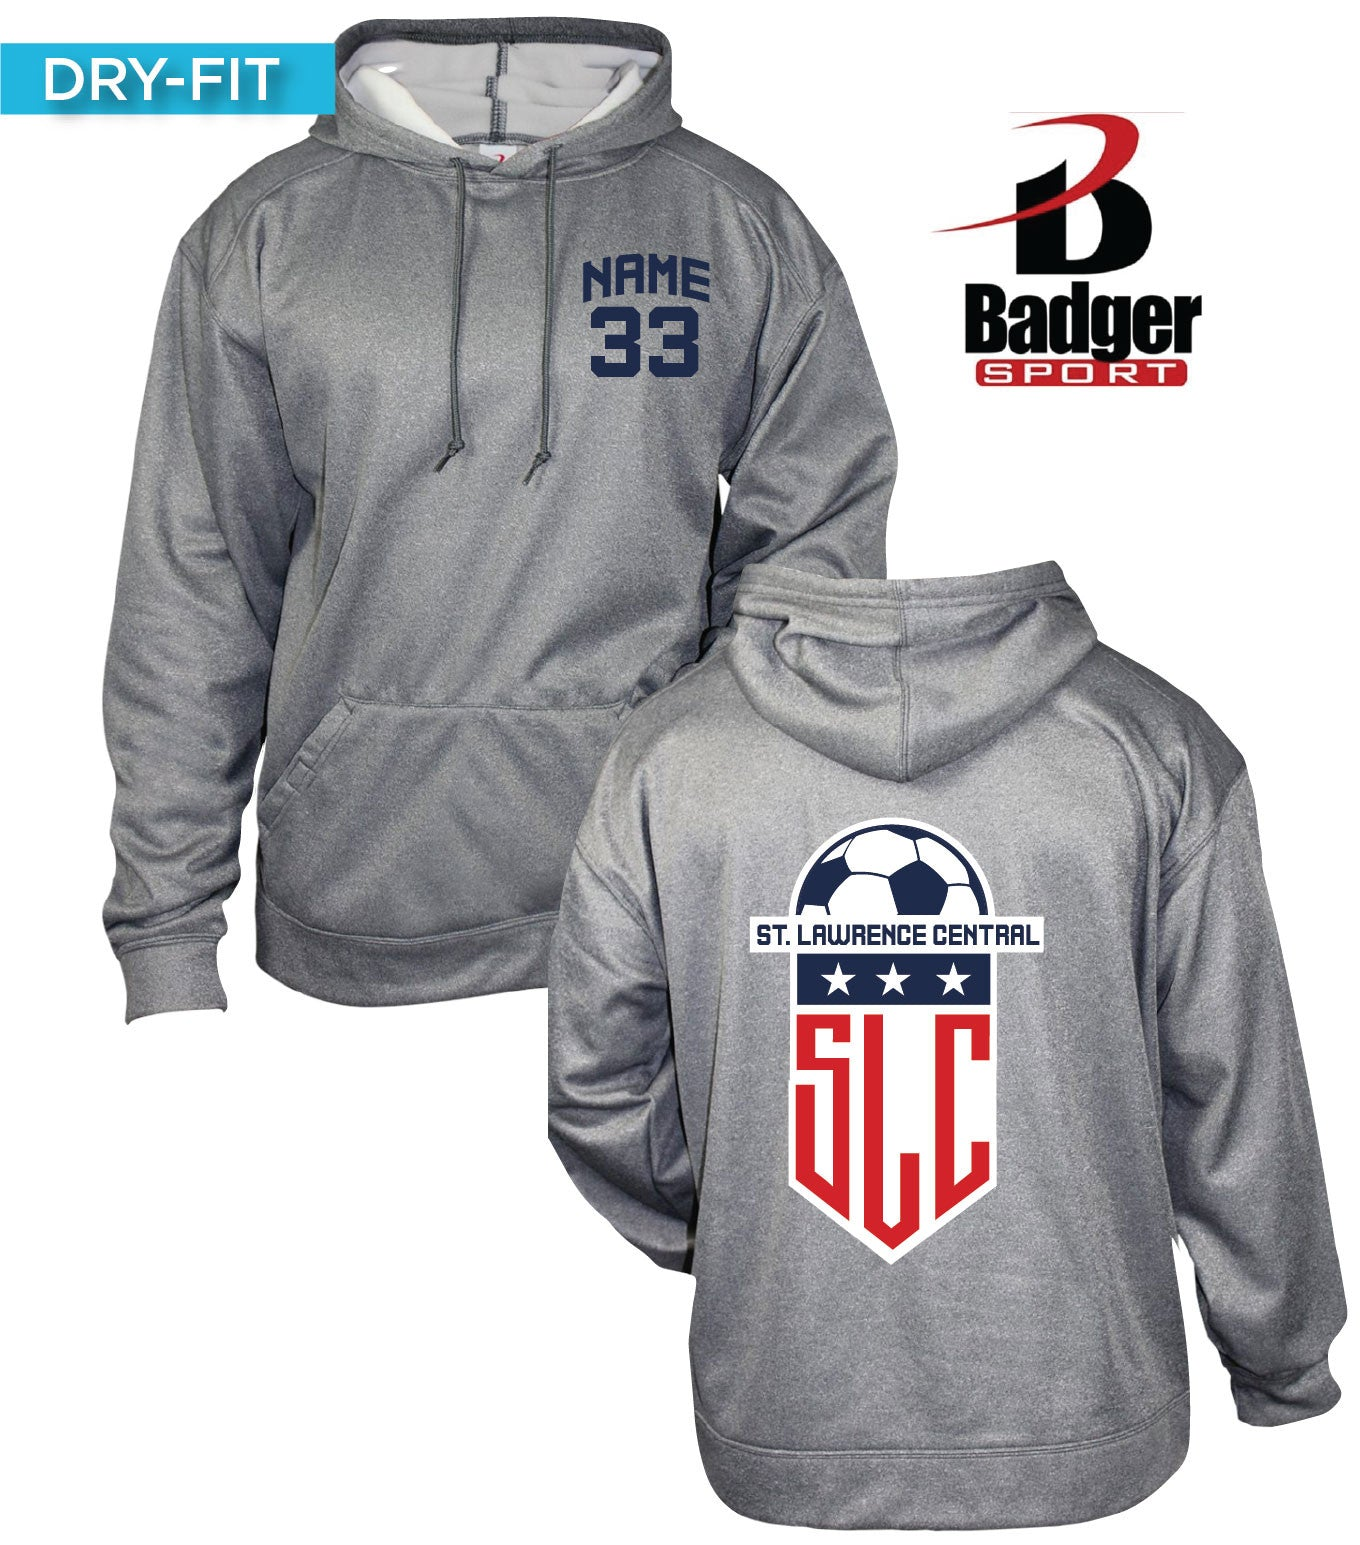 Badger Dry-Fit Heathered Hoodies